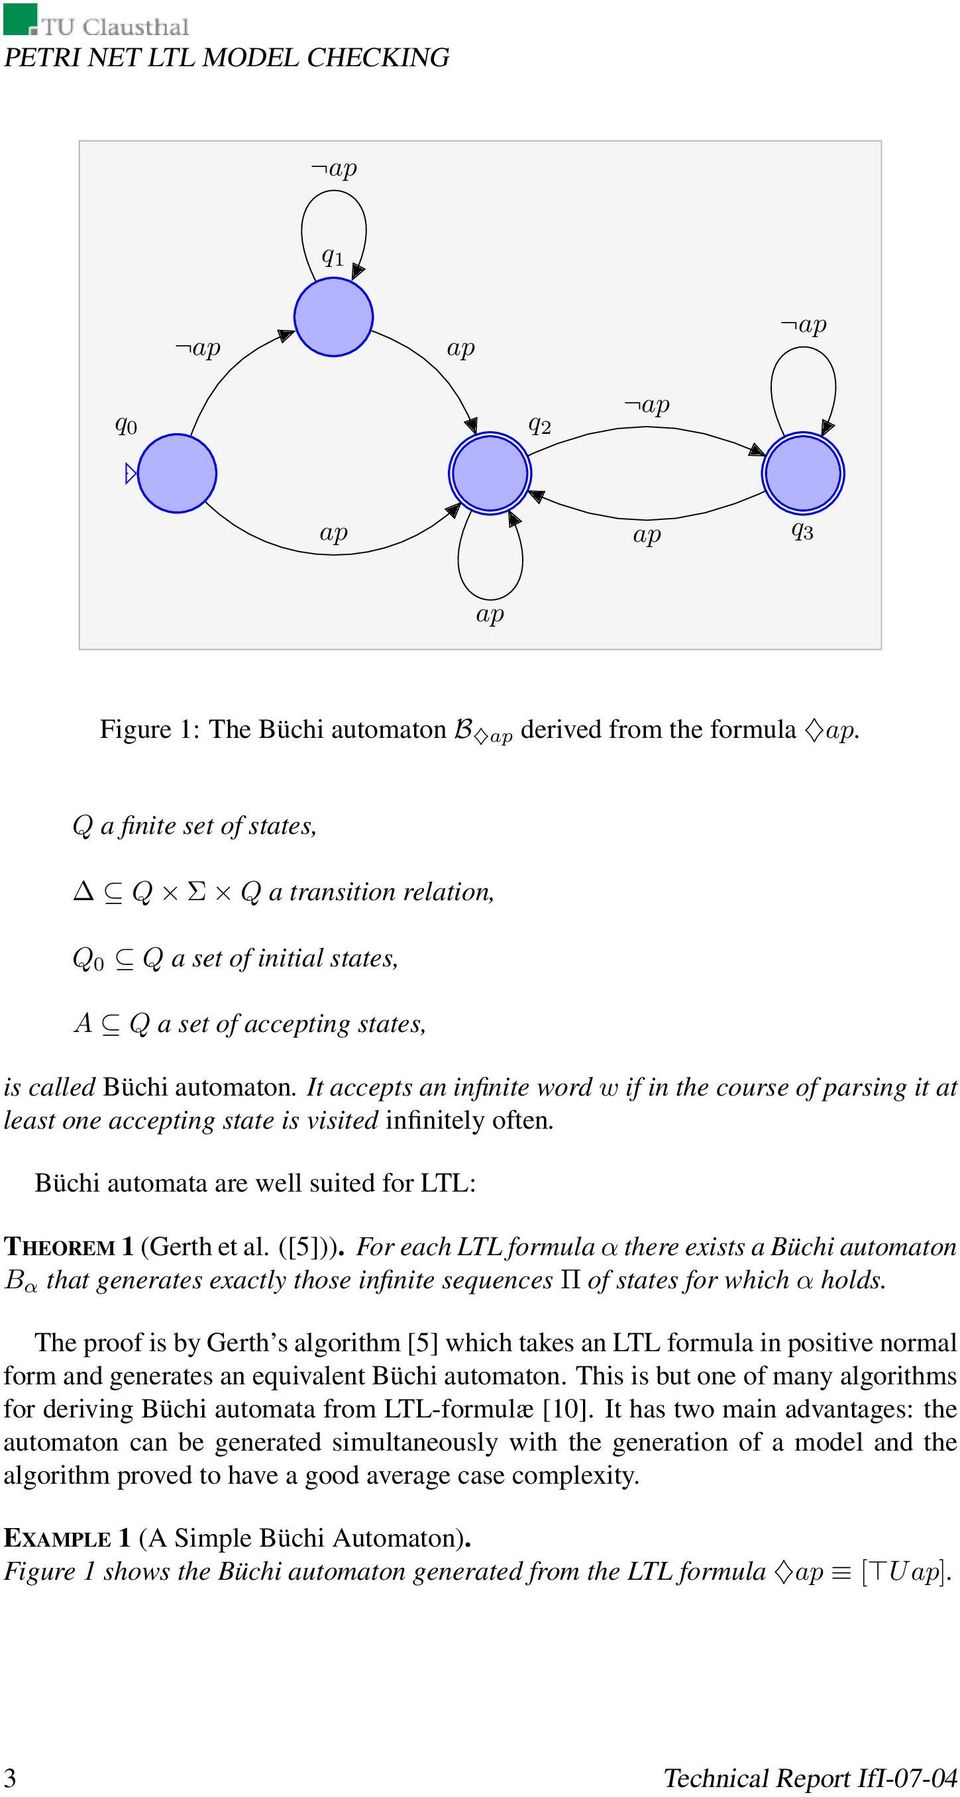 It accepts an infinite word w if in the course of parsing it at least one accepting state is visited infinitely often. Büchi automata are well suited for LTL: THEOREM 1 (Gerth et al. ([5])).